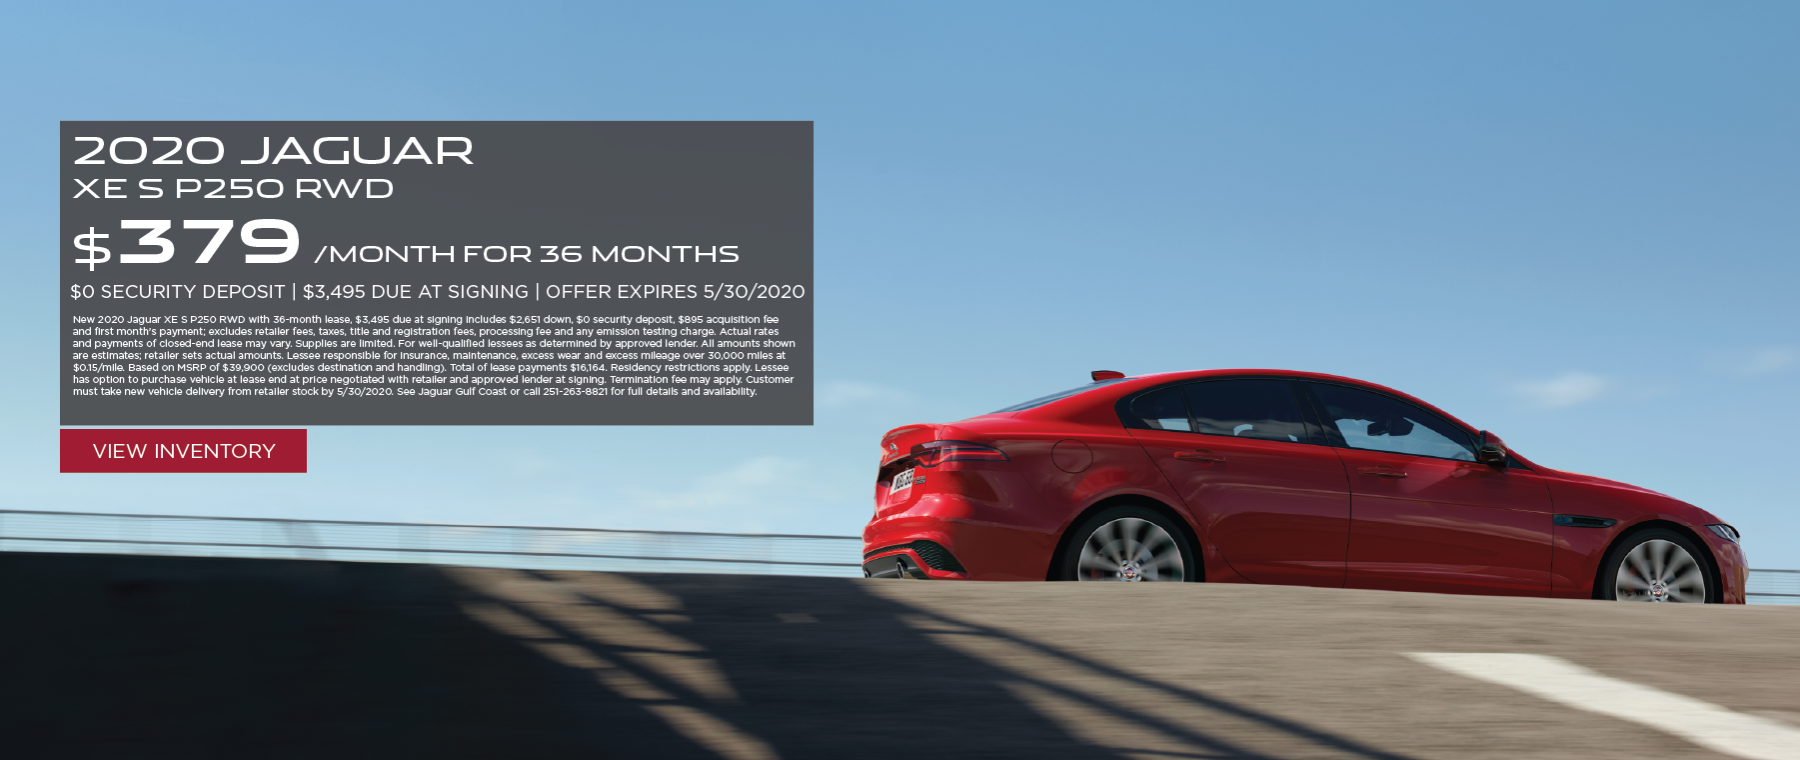 Red 2020 XE S P250 RWD on bridge. Lease for $379/mo for 36 months $3,995 Cash due at signing New 2020 Jaguar XE S P250 RWD with 36-month lease, $3,495 due at signing includes $2,651 down, $0 security deposit, $895 acquisition fee and first month's payment; excludes retailer fees, taxes, title and registration fees, processing fee and any emission testing charge. Actual rates and payments of closed-end lease may vary. Supplies are limited. For well-qualified lessees as determined by approved lender. All amounts shown are estimates; retailer sets actual amounts. Lessee responsible for insurance, maintenance, excess wear and excess mileage over 30,000 miles at $0.15/mile. Based on MSRP of $39,900 (excludes destination and handling). Total of lease payments $16,164. Residency restrictions apply. Lessee has option to purchase vehicle at lease end at price negotiated with retailer and approved lender at signing. Termination fee may apply. Customer must take new vehicle delivery from retailer stock by 5/30/2020. See Jaguar Gulf Coast or call 251-263-8821 for full details and availability. Click to view inventory.